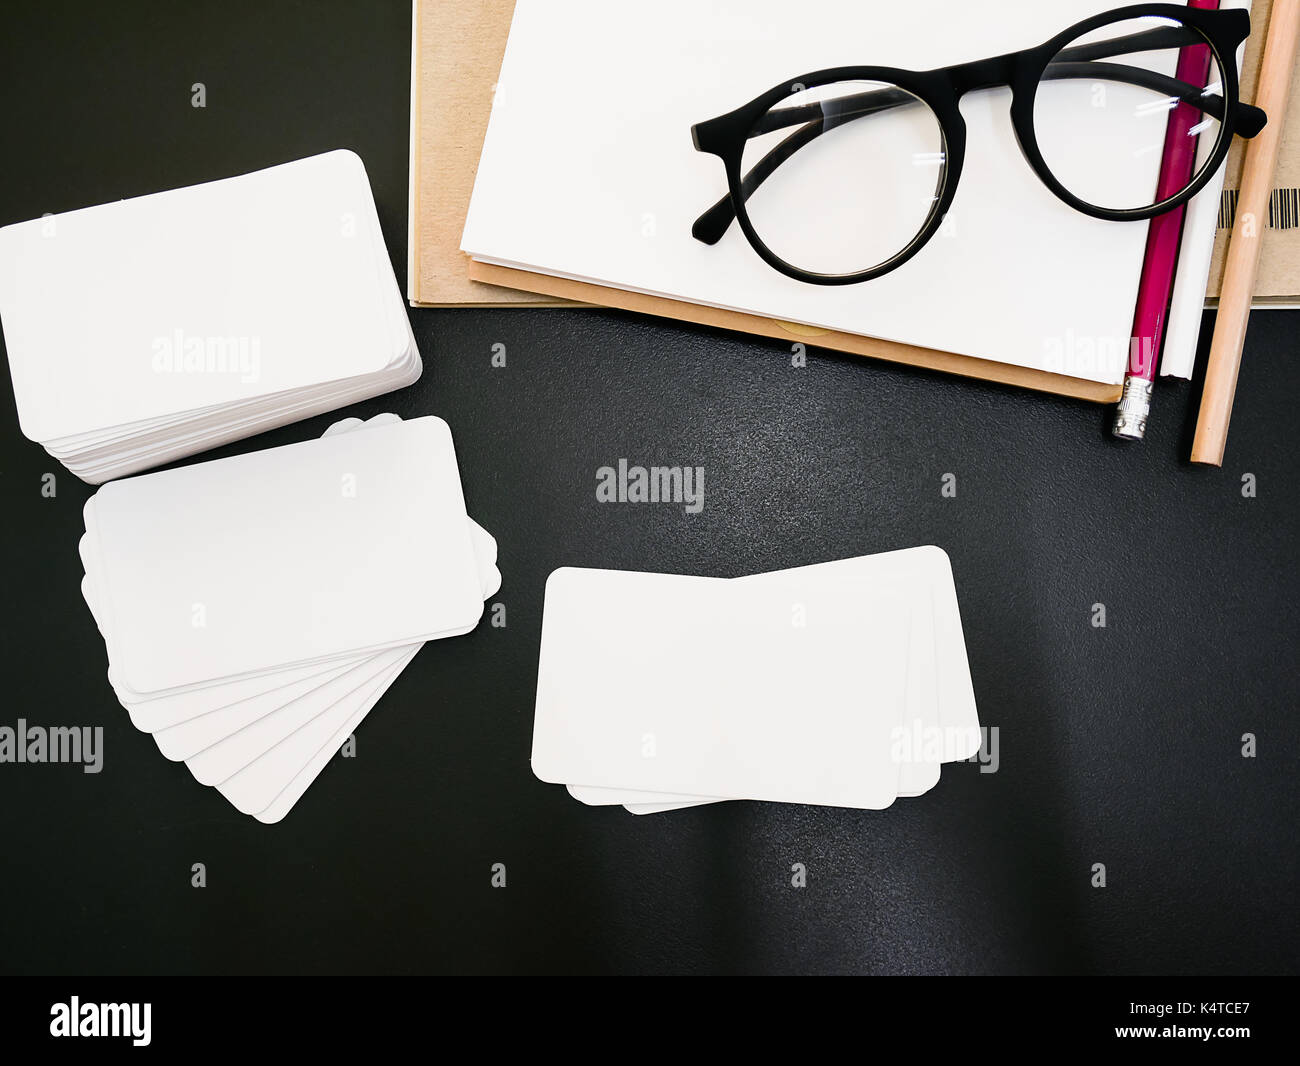 Blank corporate identity business card package on worker table - Stock Image